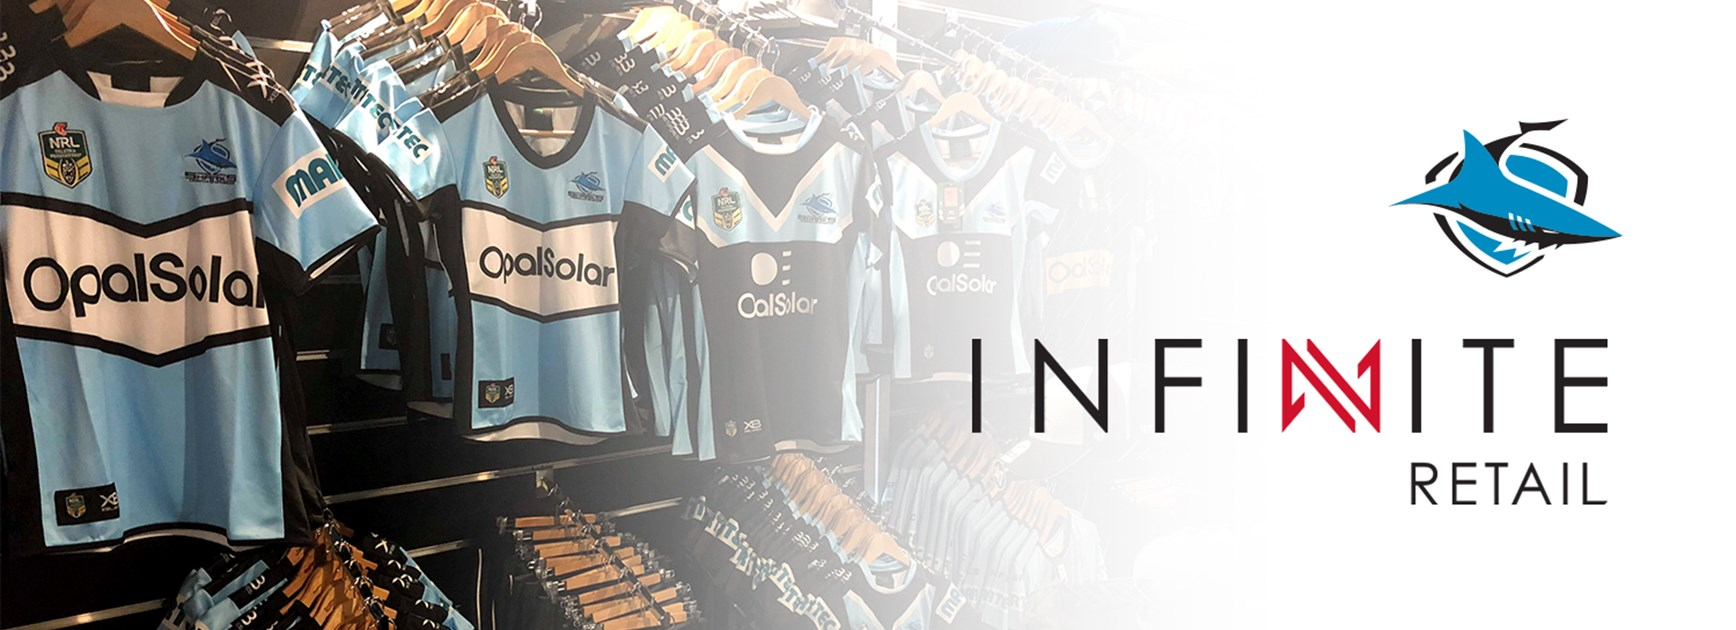 'Infinite' possibilities with Sharks new retail partner